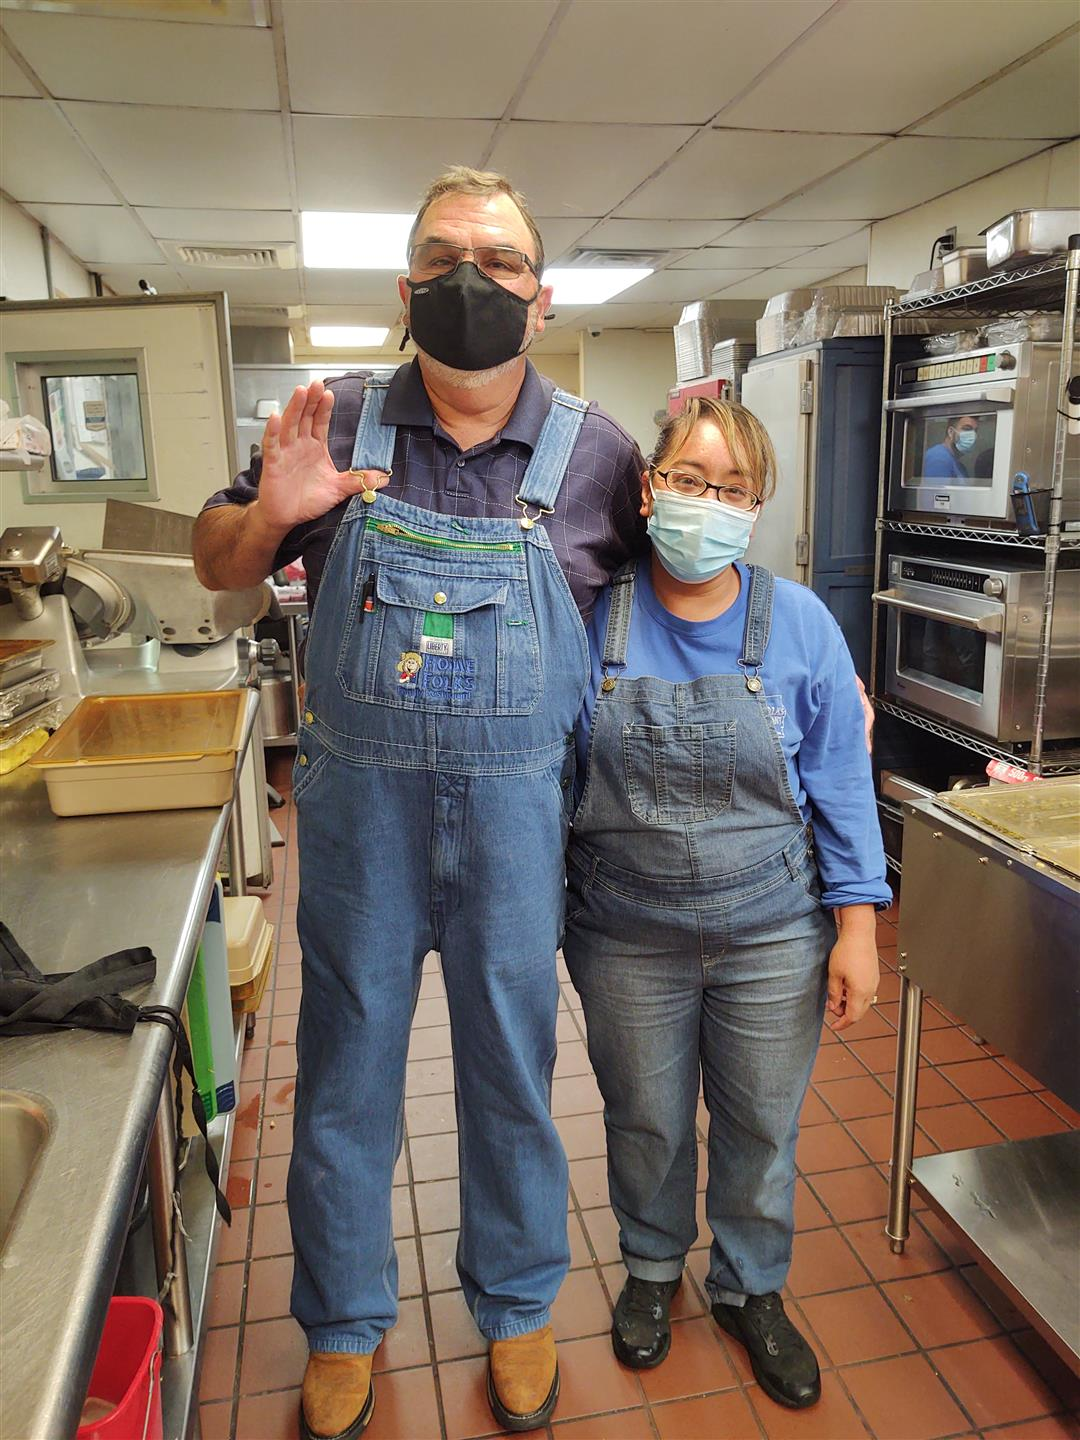 Rick and employee standing in kitchen with masks on